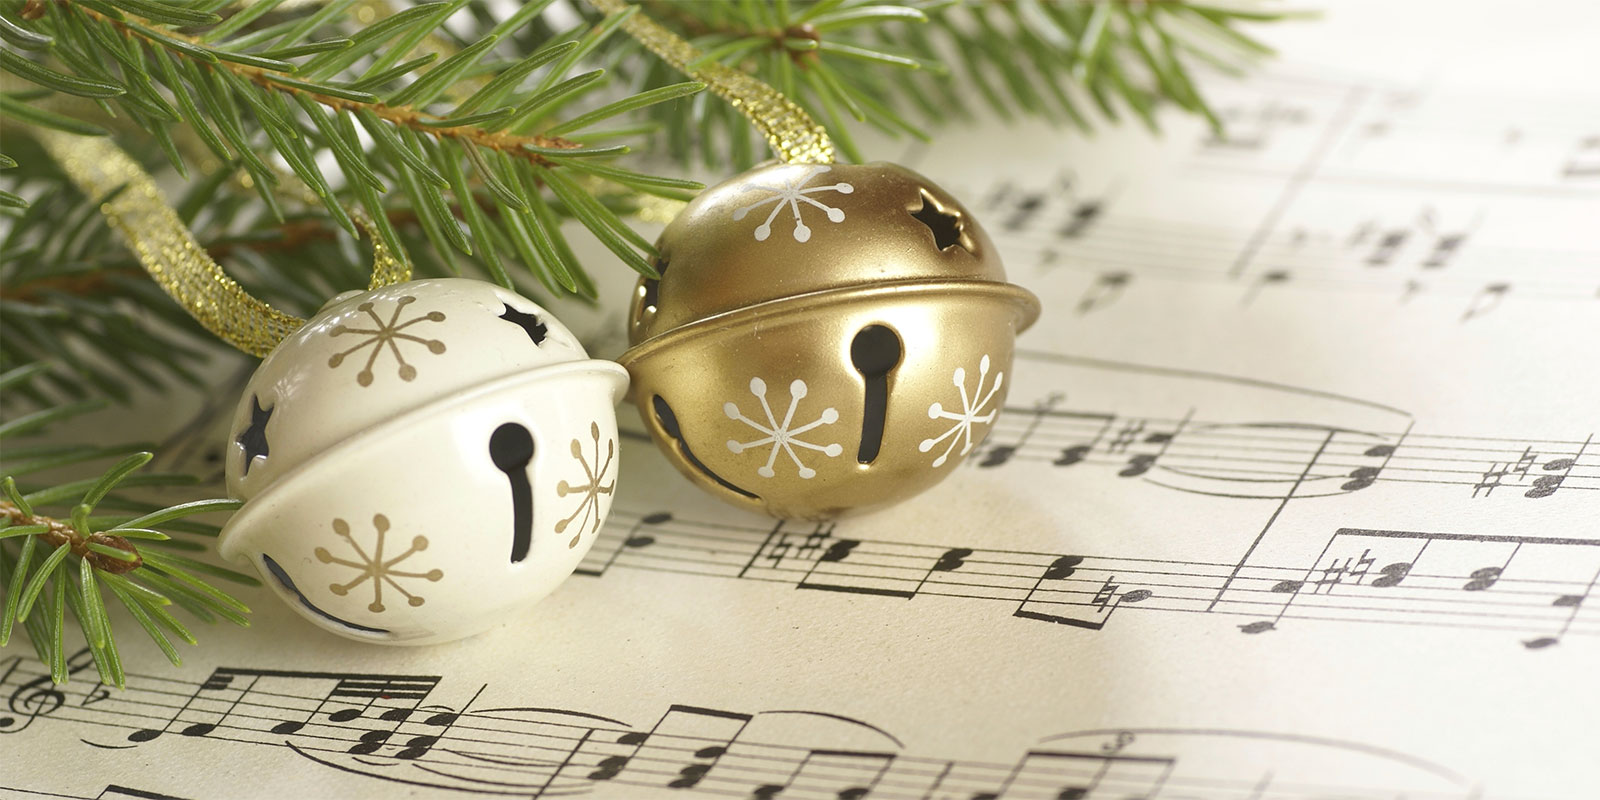 11 Legendary Christmas Songs Written by Jews